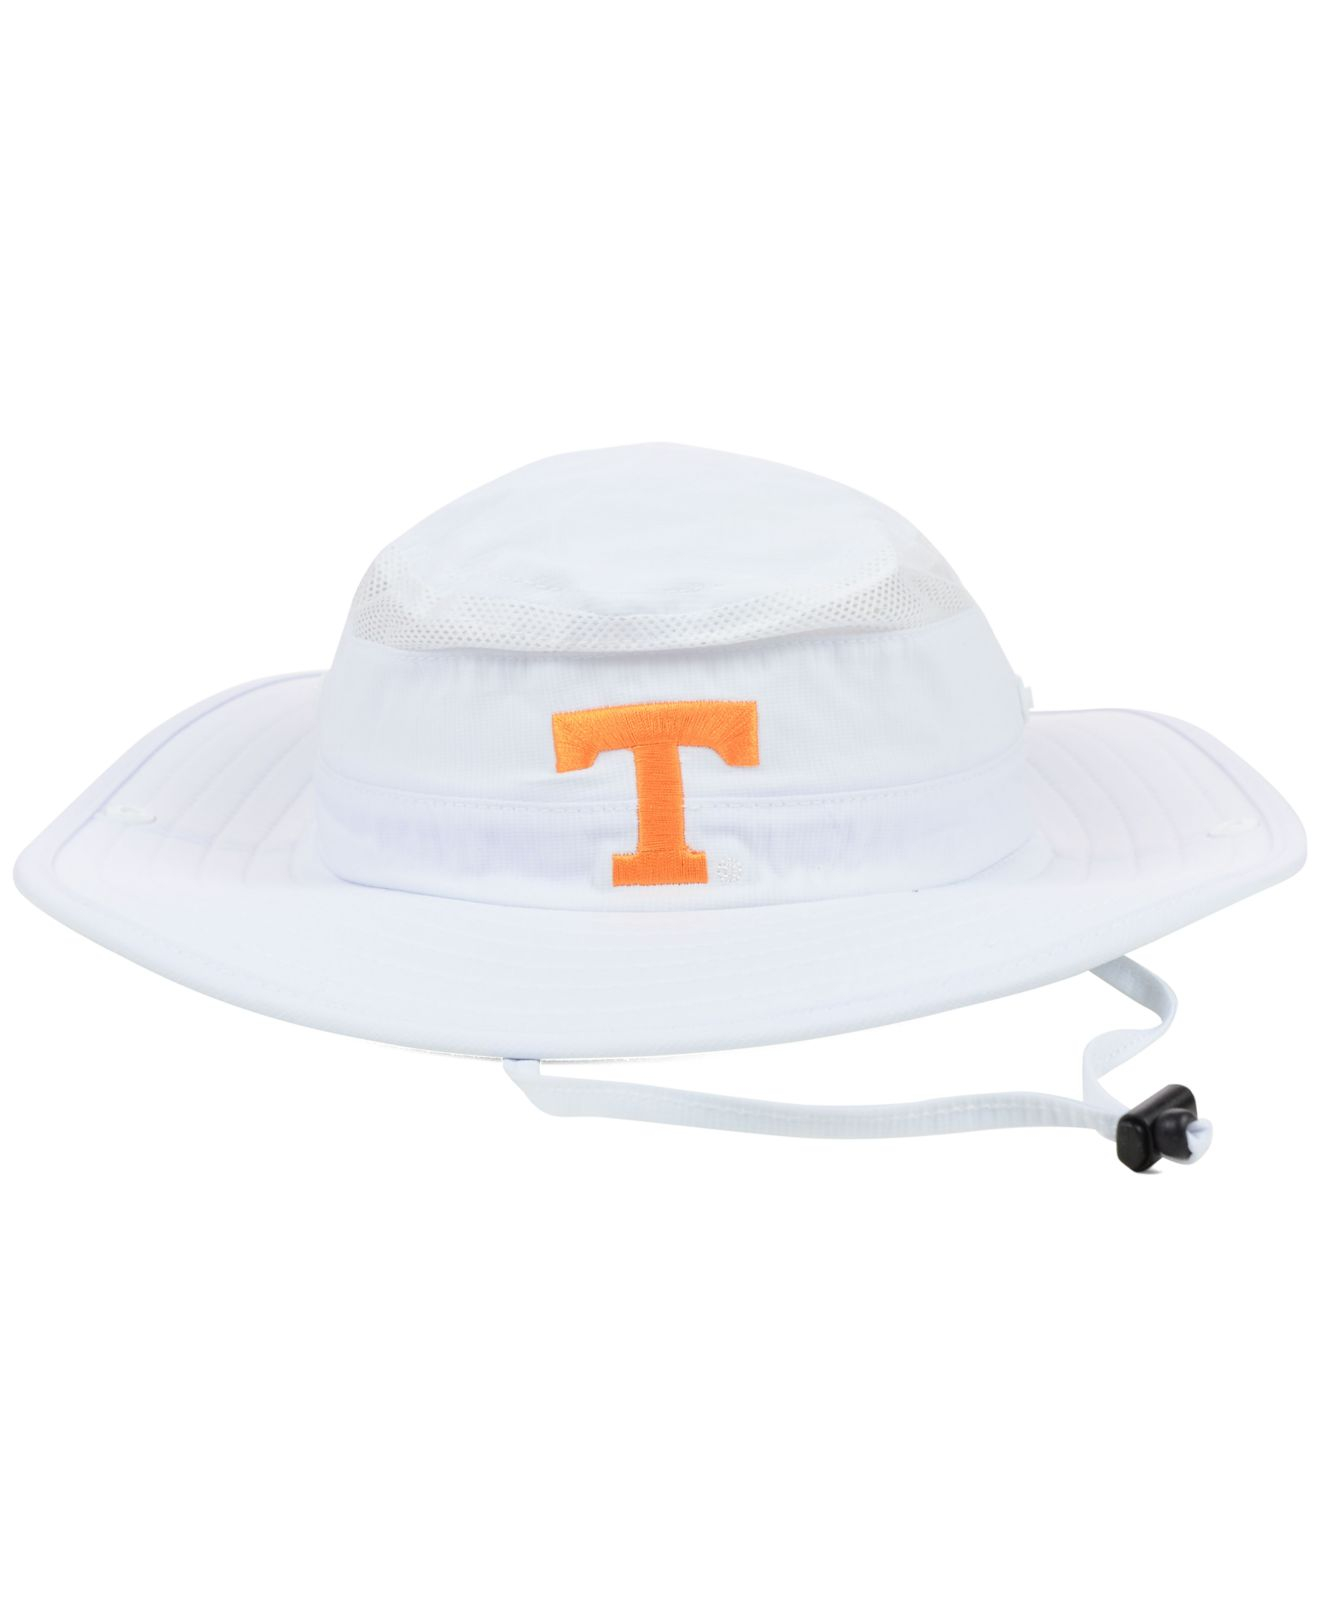 Lyst - adidas Tennessee Volunteers Campus Safari Hat in White for Men caa89603cf3